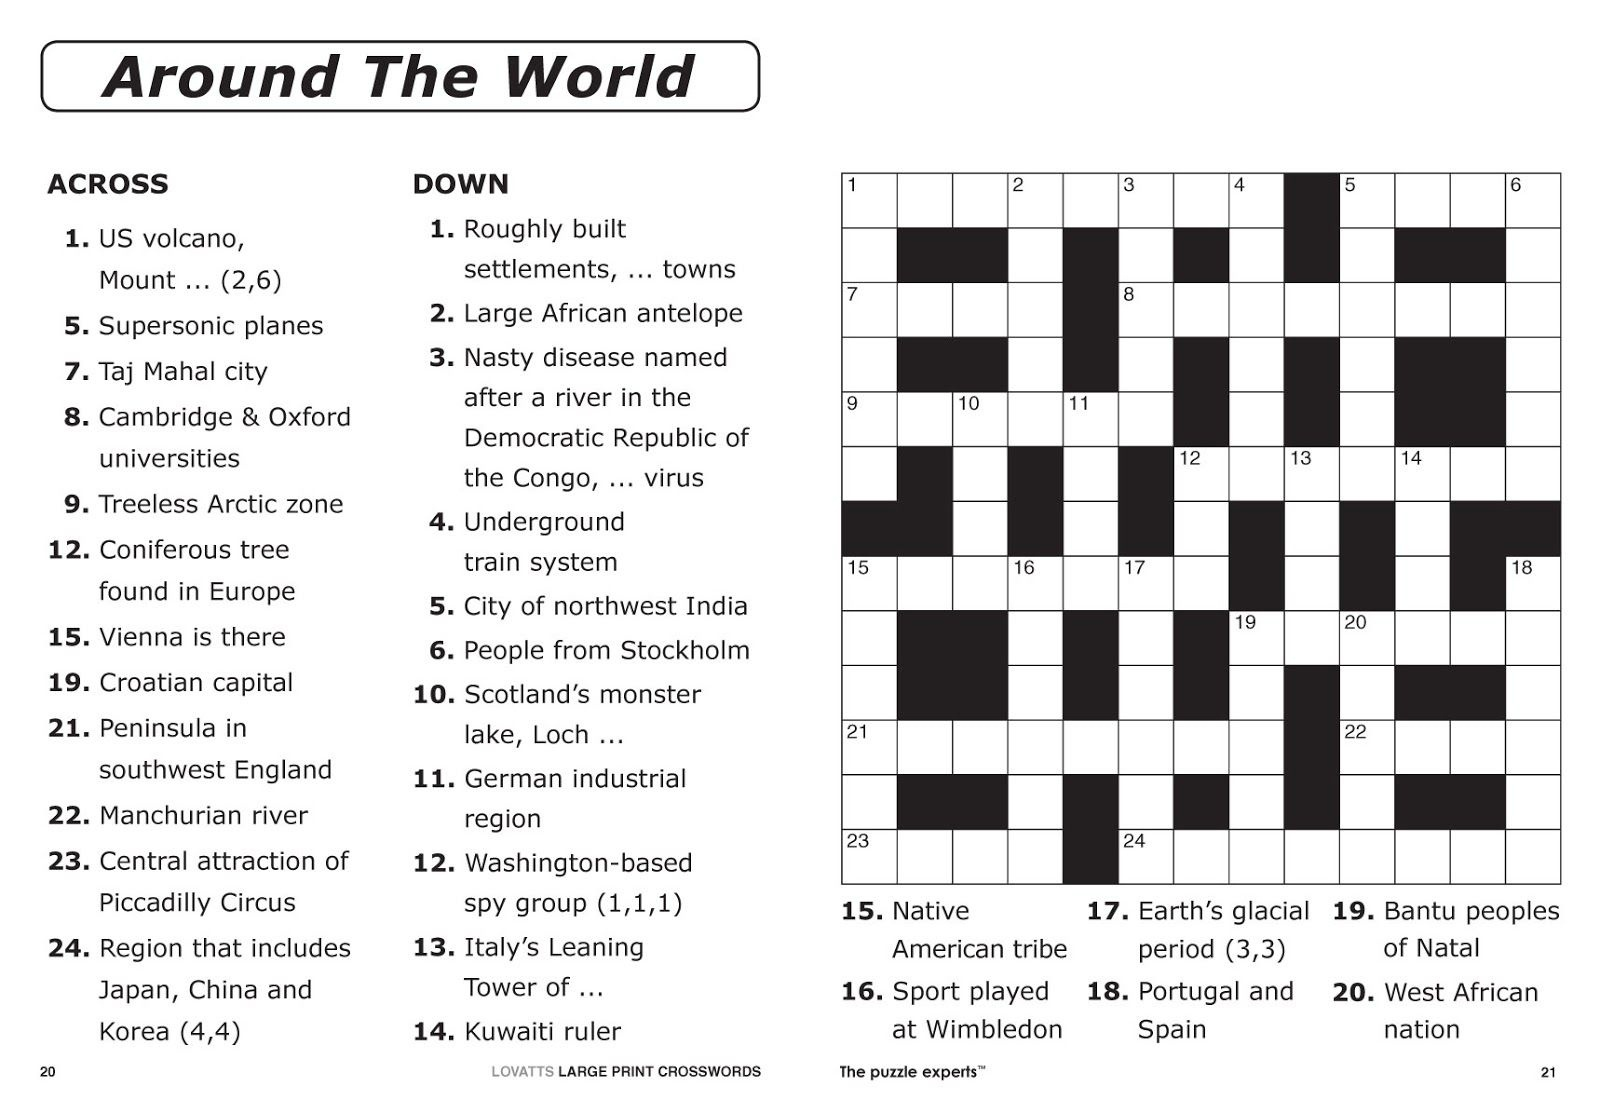 Free Printable Large Print Crossword Puzzles | M3U8 - Free Printable Puzzles